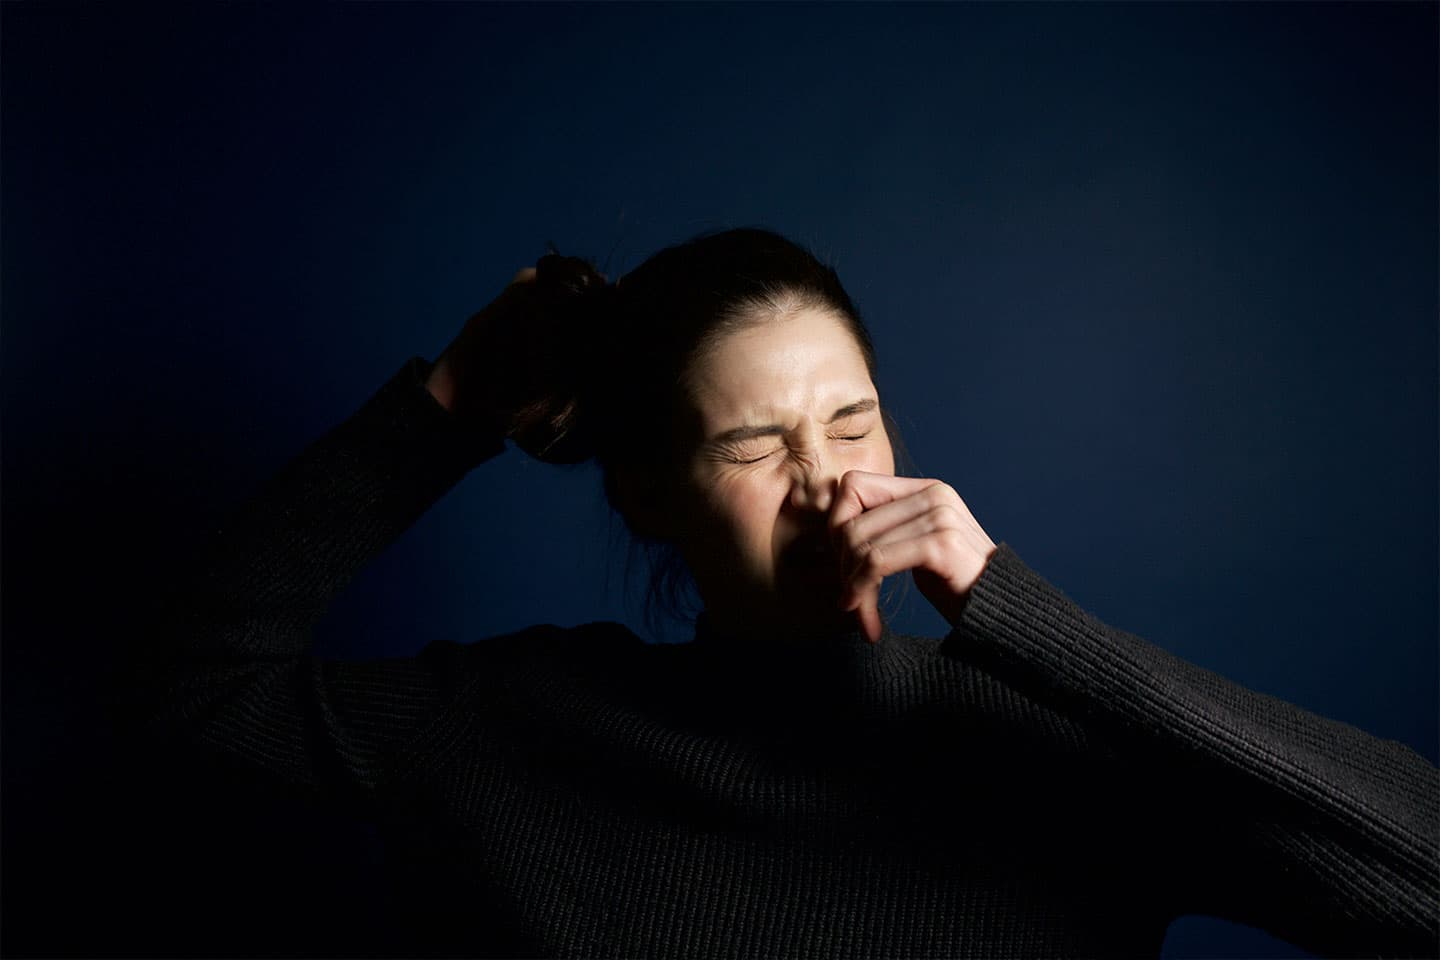 a woman getting ready to sneeze